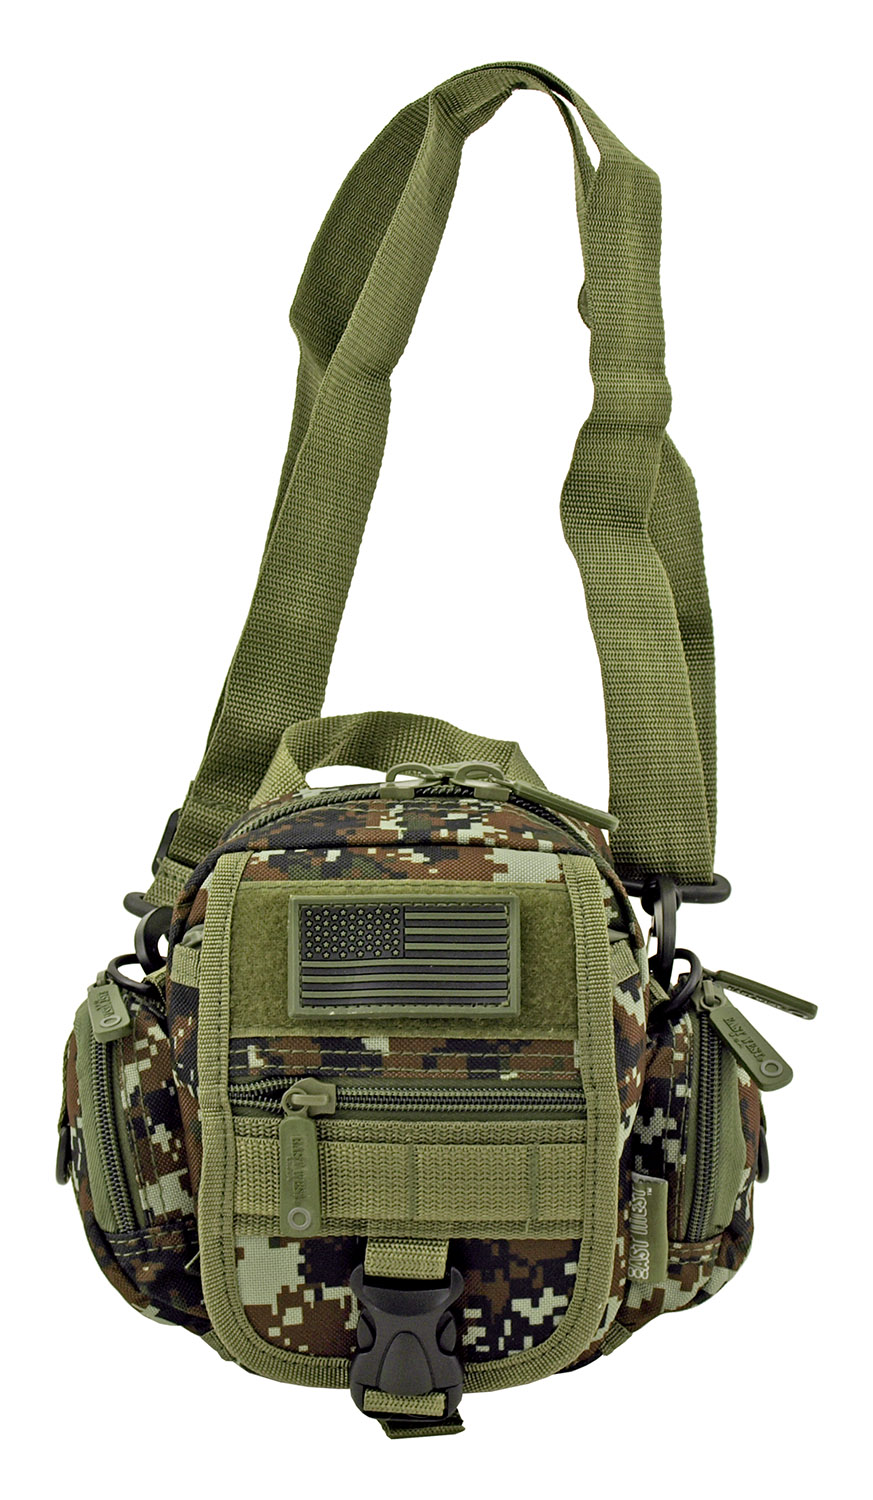 Multi-Functional Tactical Utility Backpack Fanny Pack - Green Digital Camo